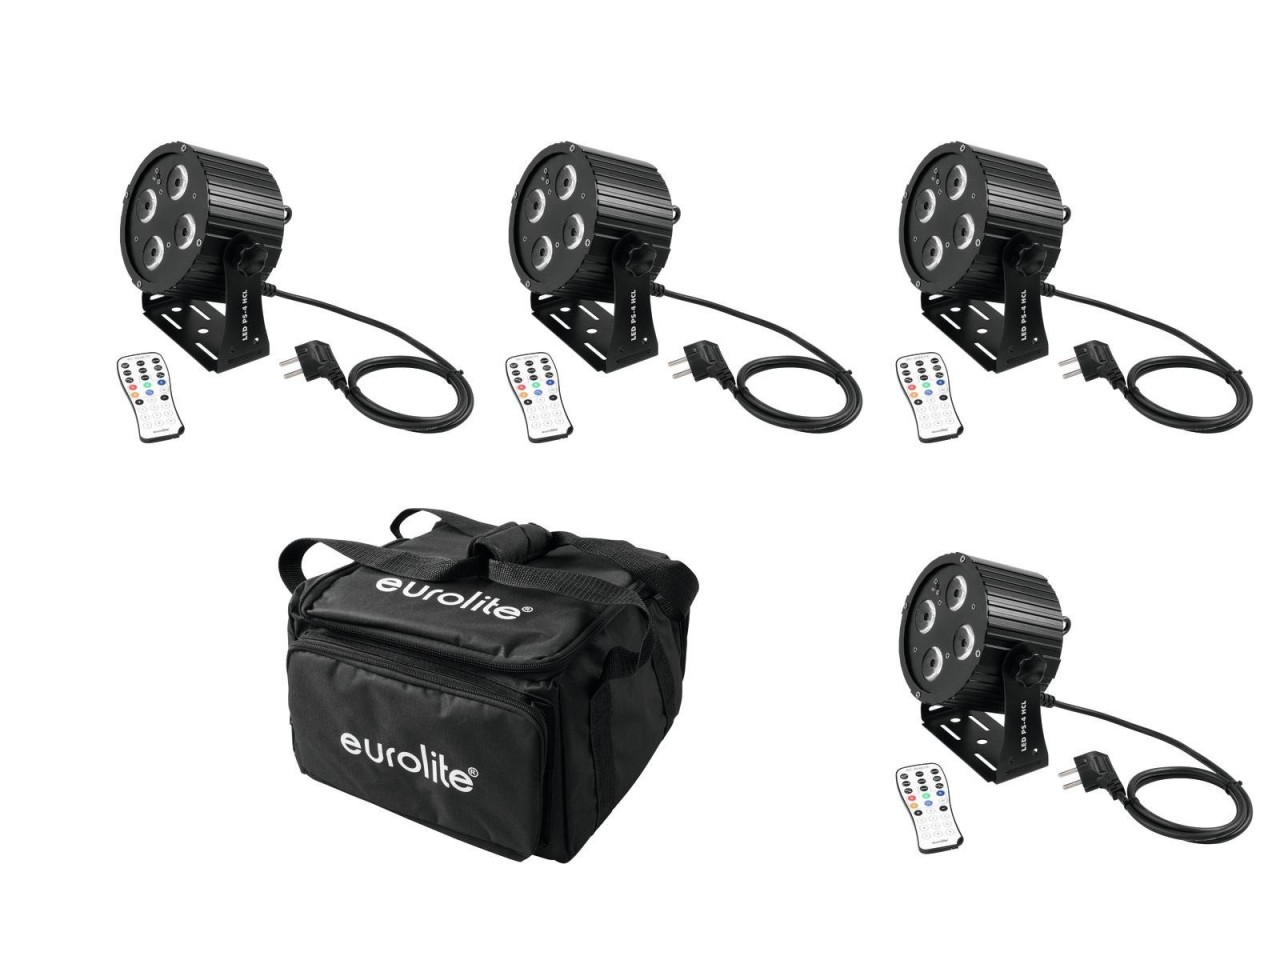 4 mobile LED Scheinwerfer Set - 4 12W LED PS-4 HCL Spot - inkl- 4er Soft-Bag (DMX- Auto- Sound- IR)